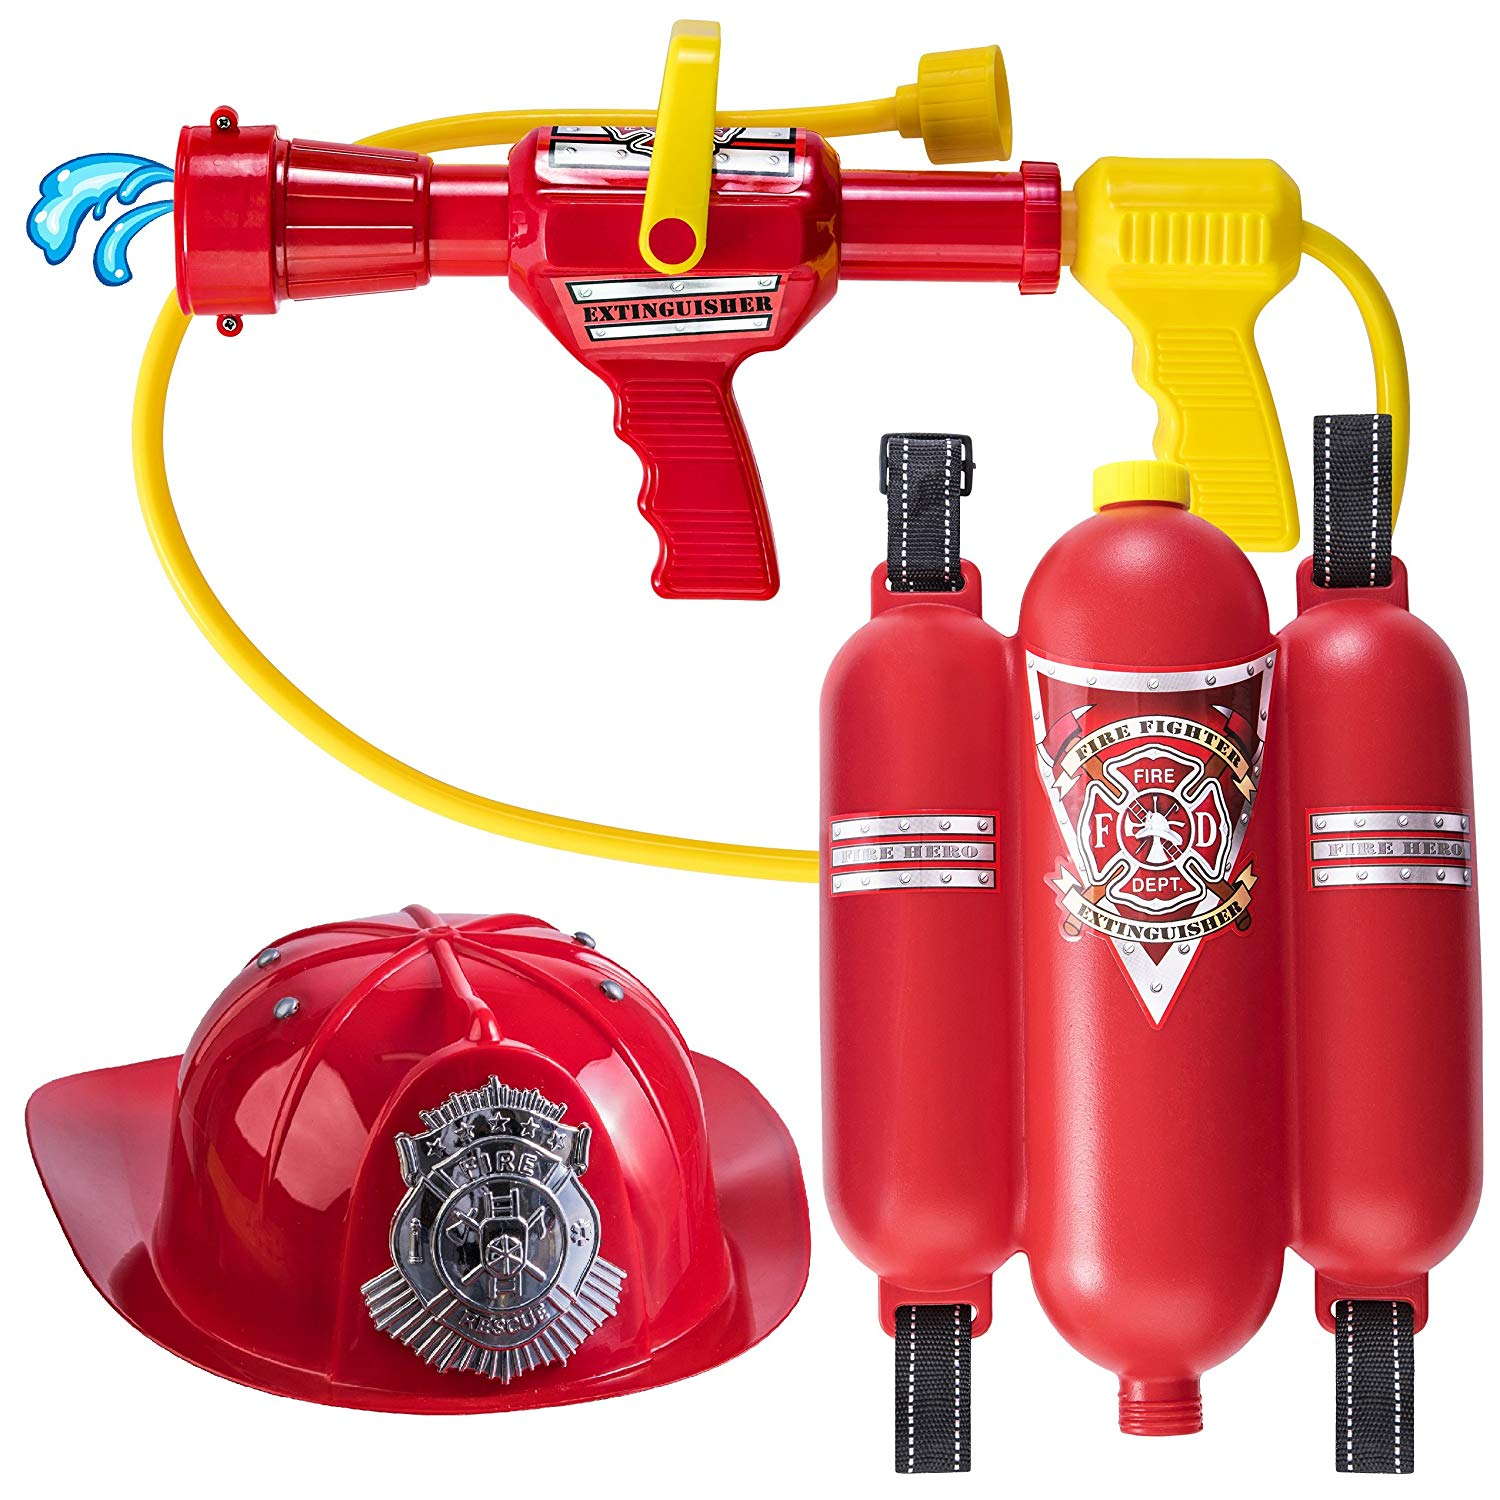 Prextex Fireman Backpack Water Gun Blaster with Fire Hat- Water Gun Beach Toy and Outdoor Sports Toy by Prextex